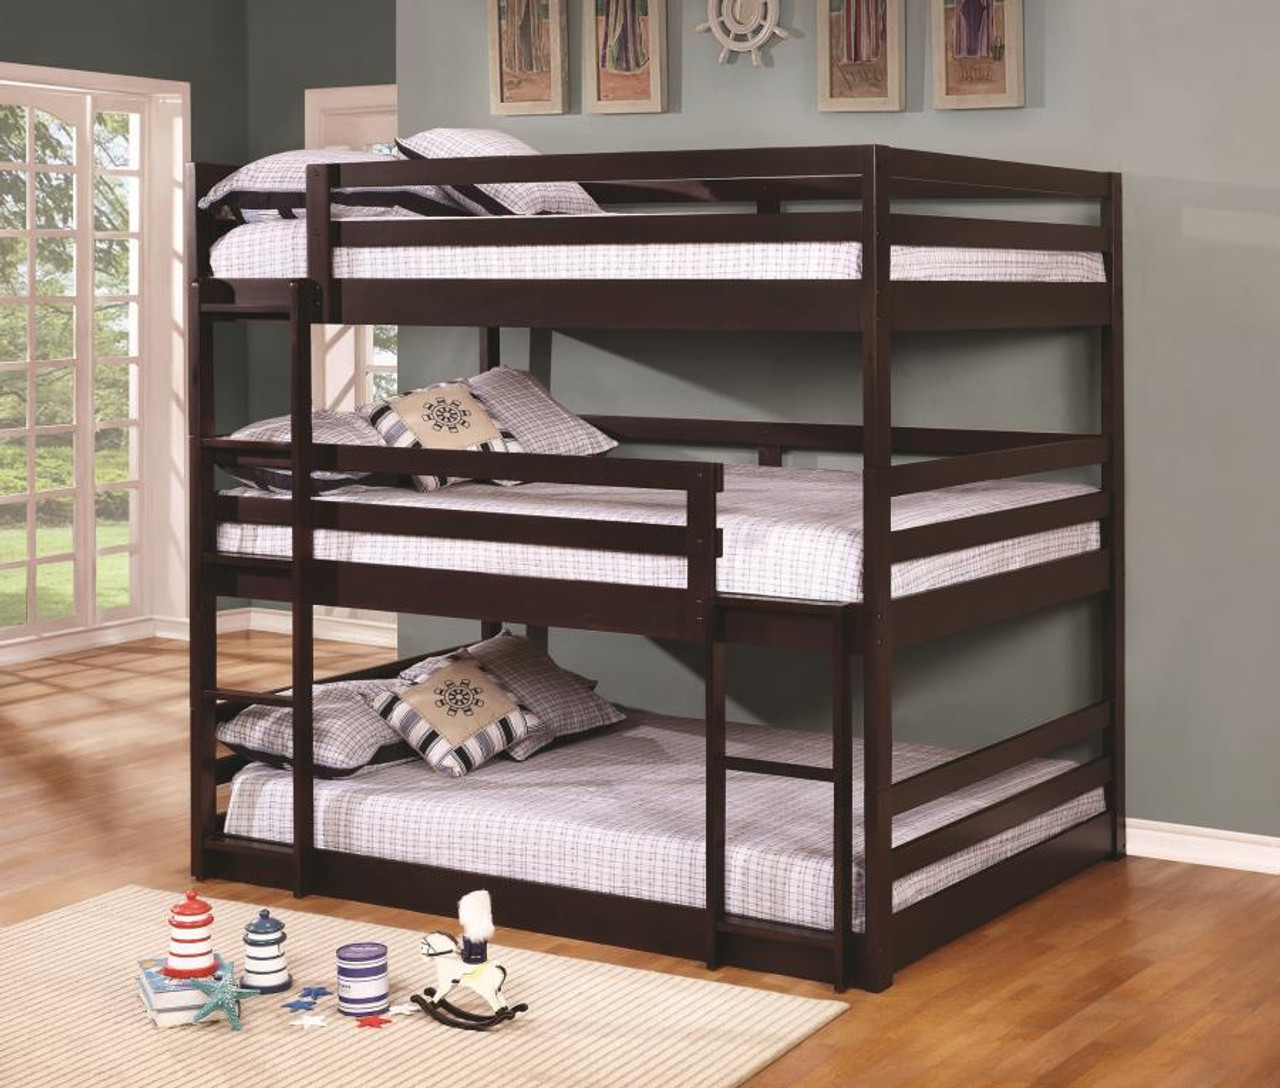 coaster mythos full size triple layer bunk bed in cappuccino. Black Bedroom Furniture Sets. Home Design Ideas